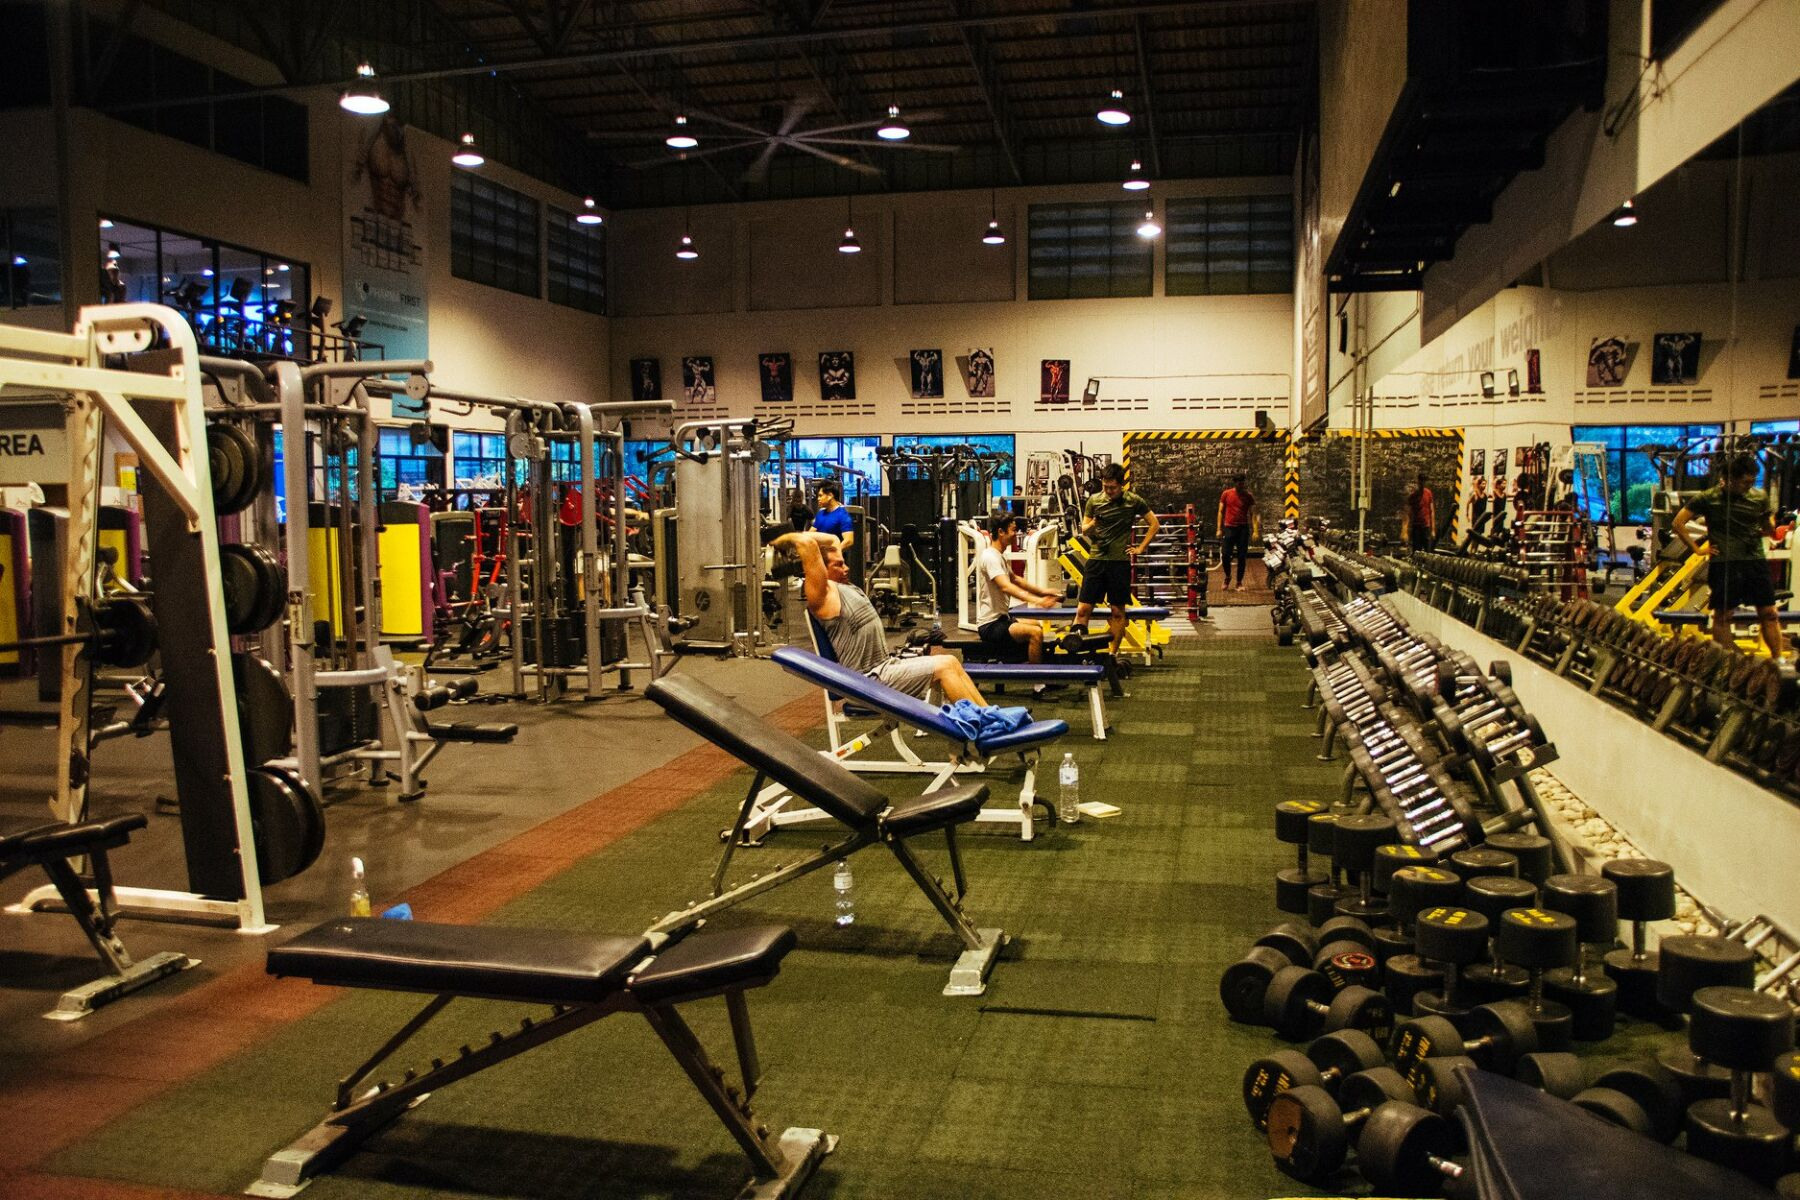 Muscle Factory - One of the best gyms in Bangkok